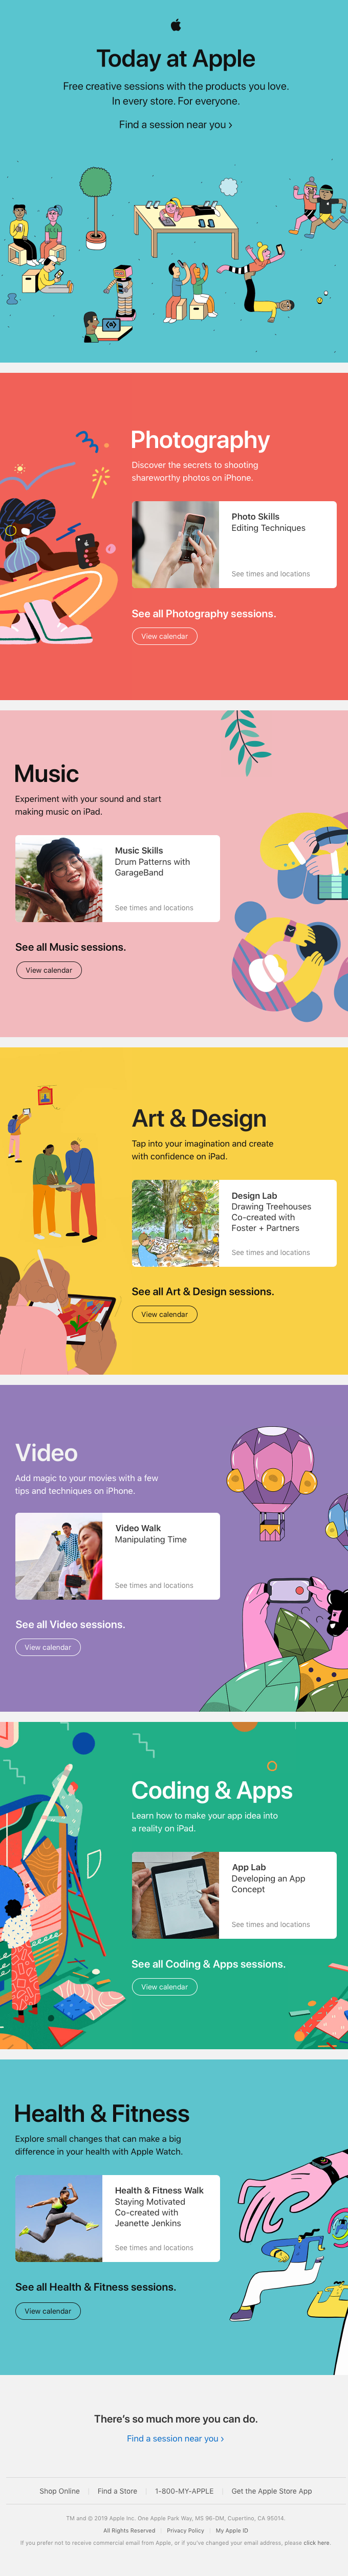 Learn, create, and be inspired at the Apple Store.